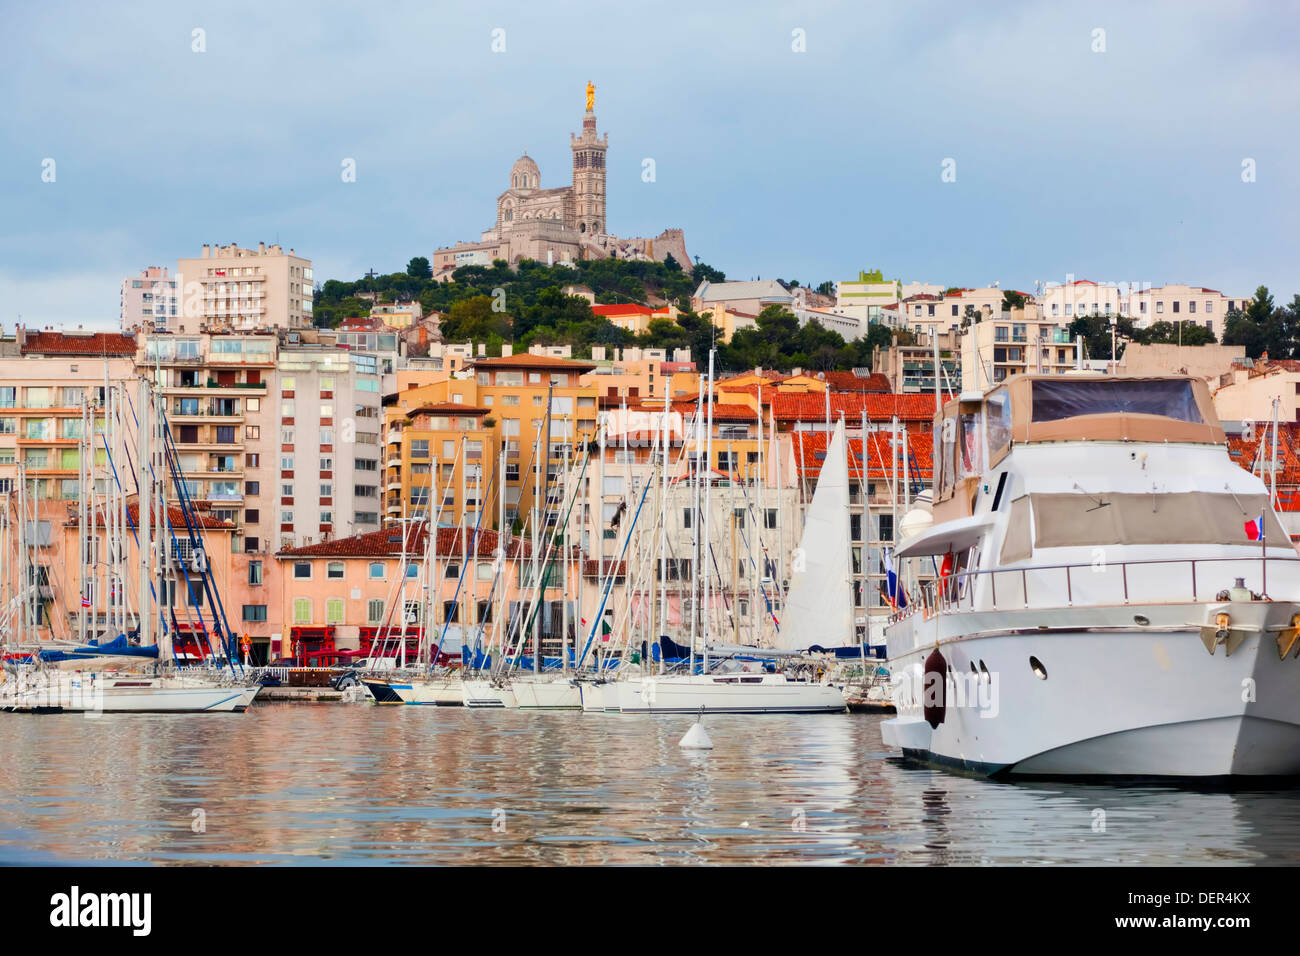 Marseille, France : The famous old port with a view of the Notre Dame de la Garde cathedral - Stock Image